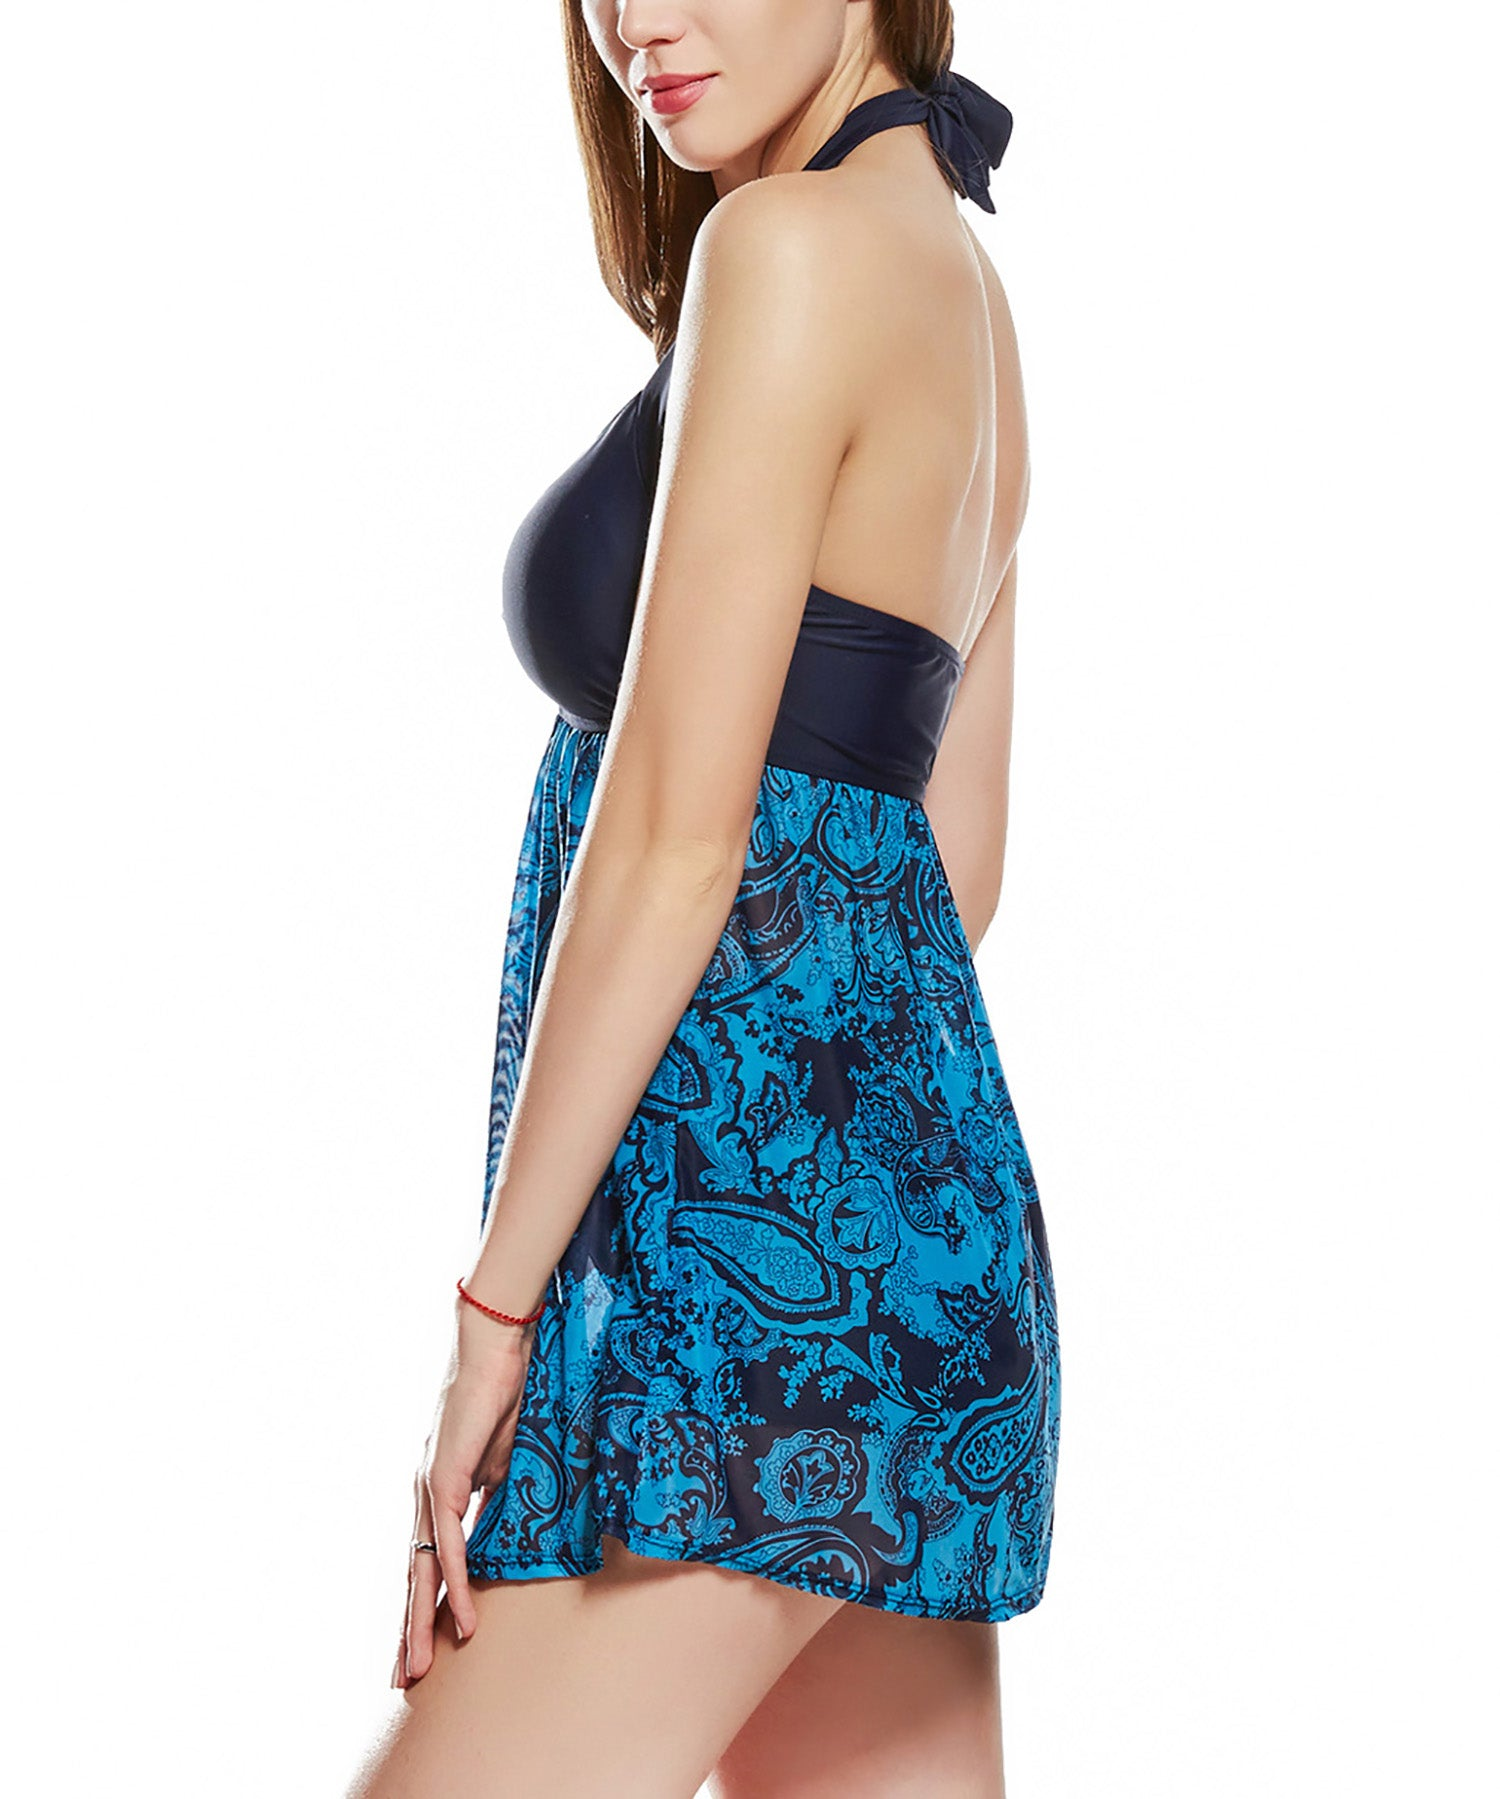 Gorgeous Black Top Floral Print Bottom Halterneck HerFashion Swimdress